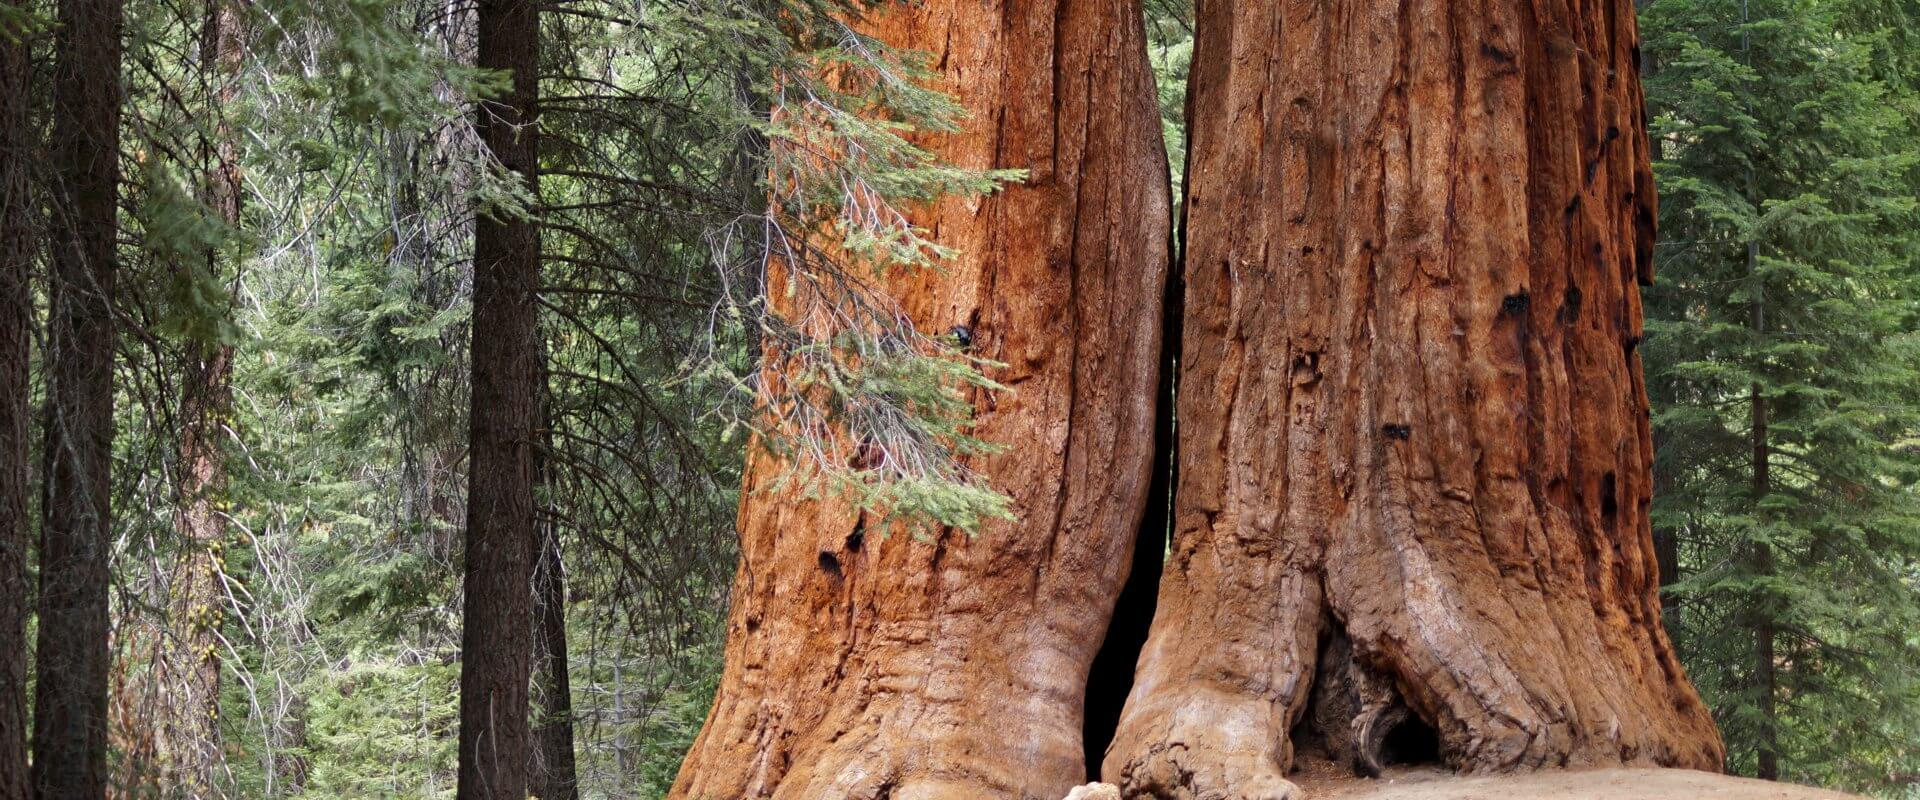 Trail of 100 Giants, Giant Sequoia National Monument, USA